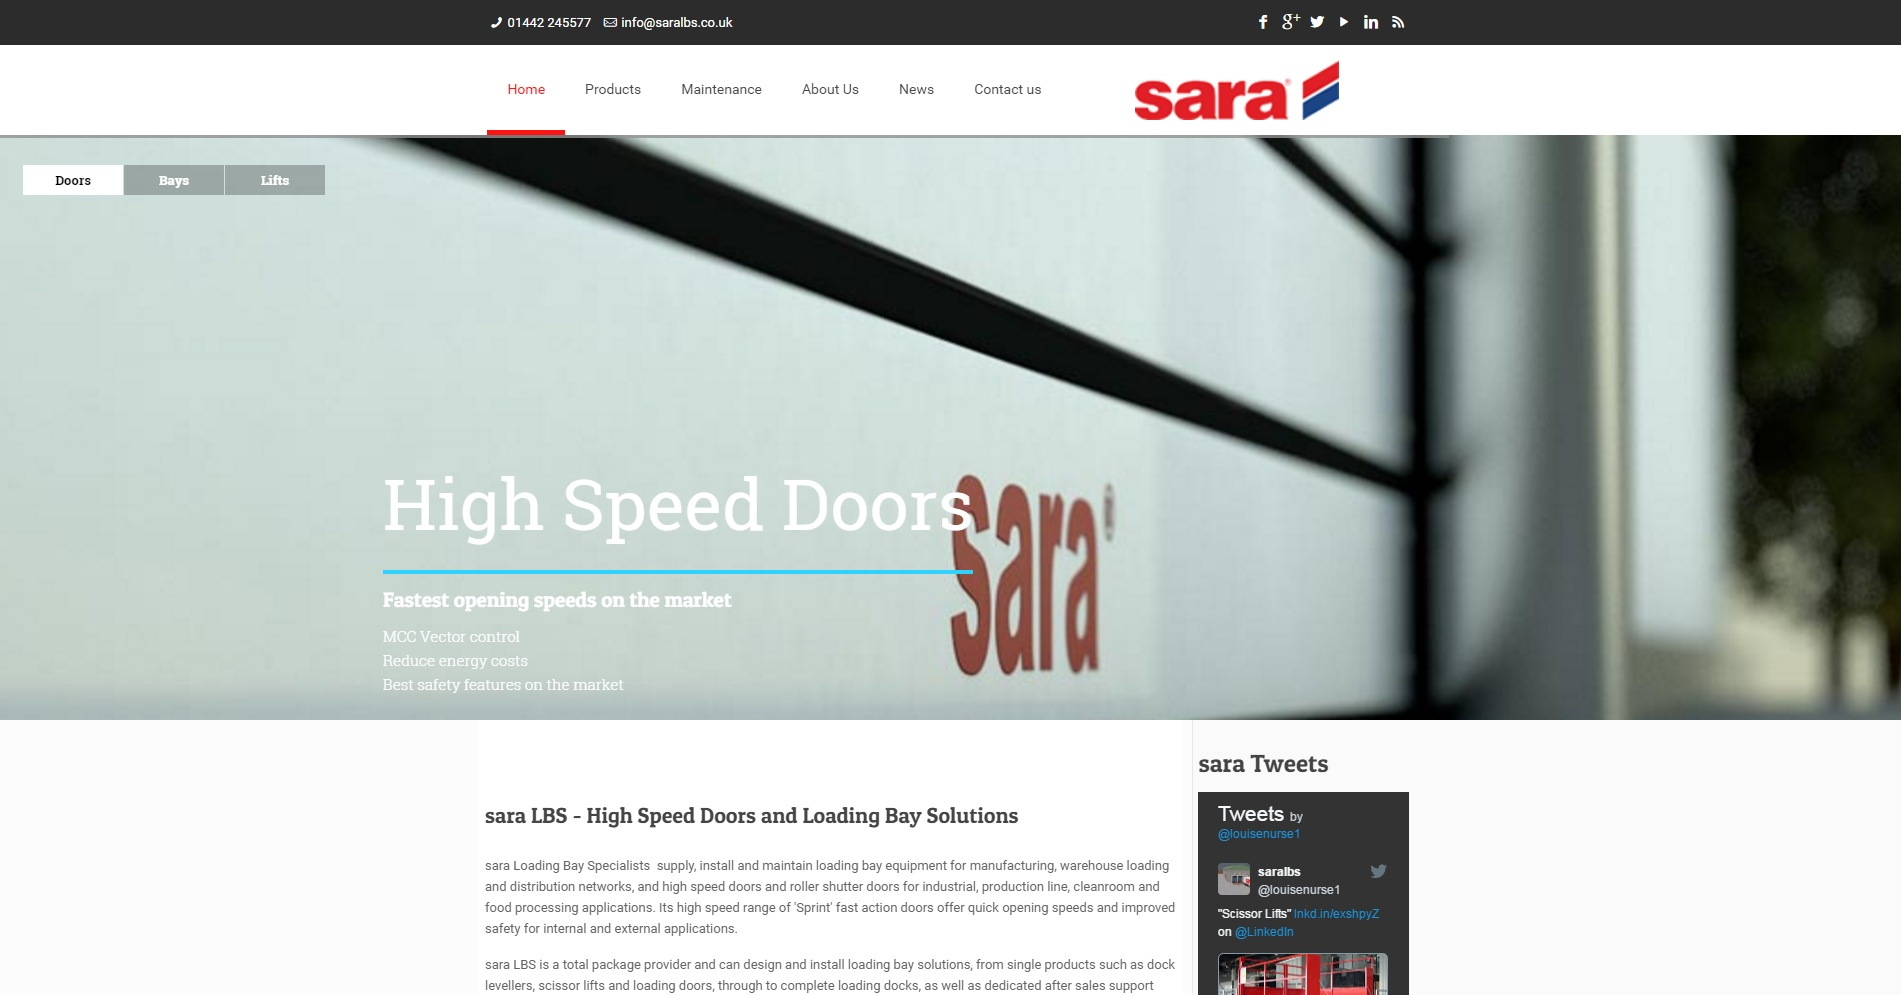 sara LBS launches new website for easy product searching and information download